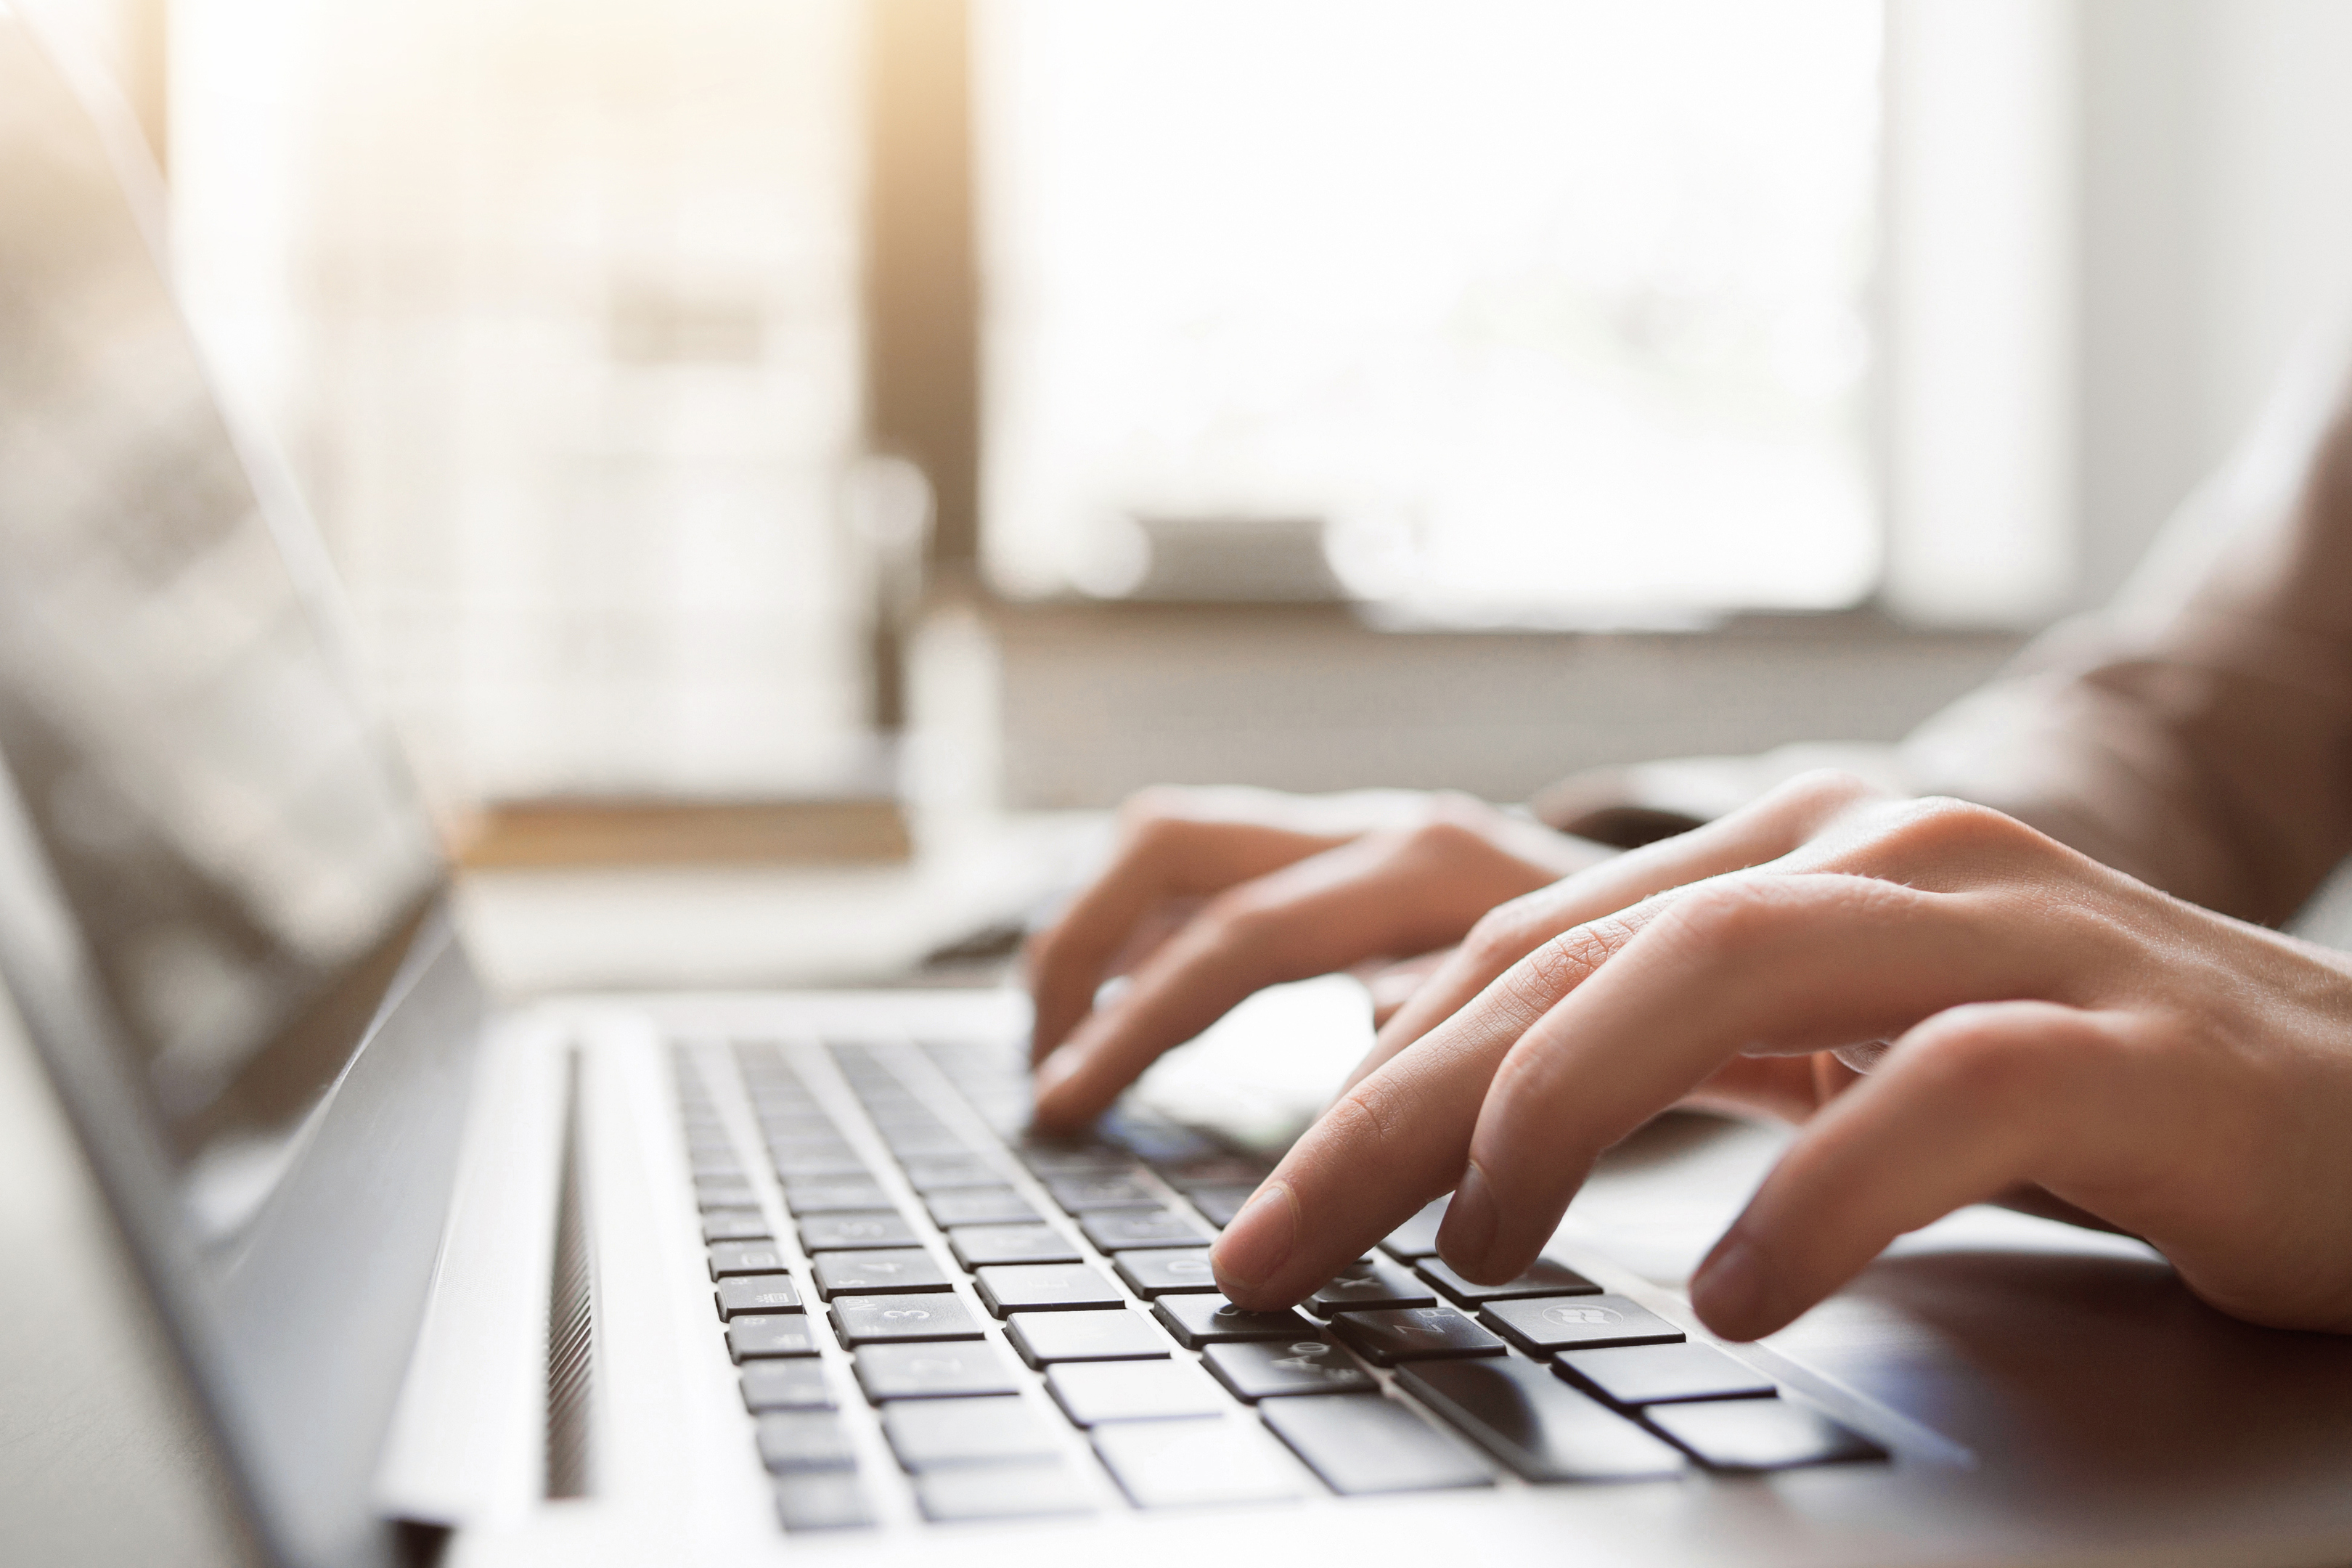 Nearly three in 10 people aged 65 and older say they have never used a computer (iStock)